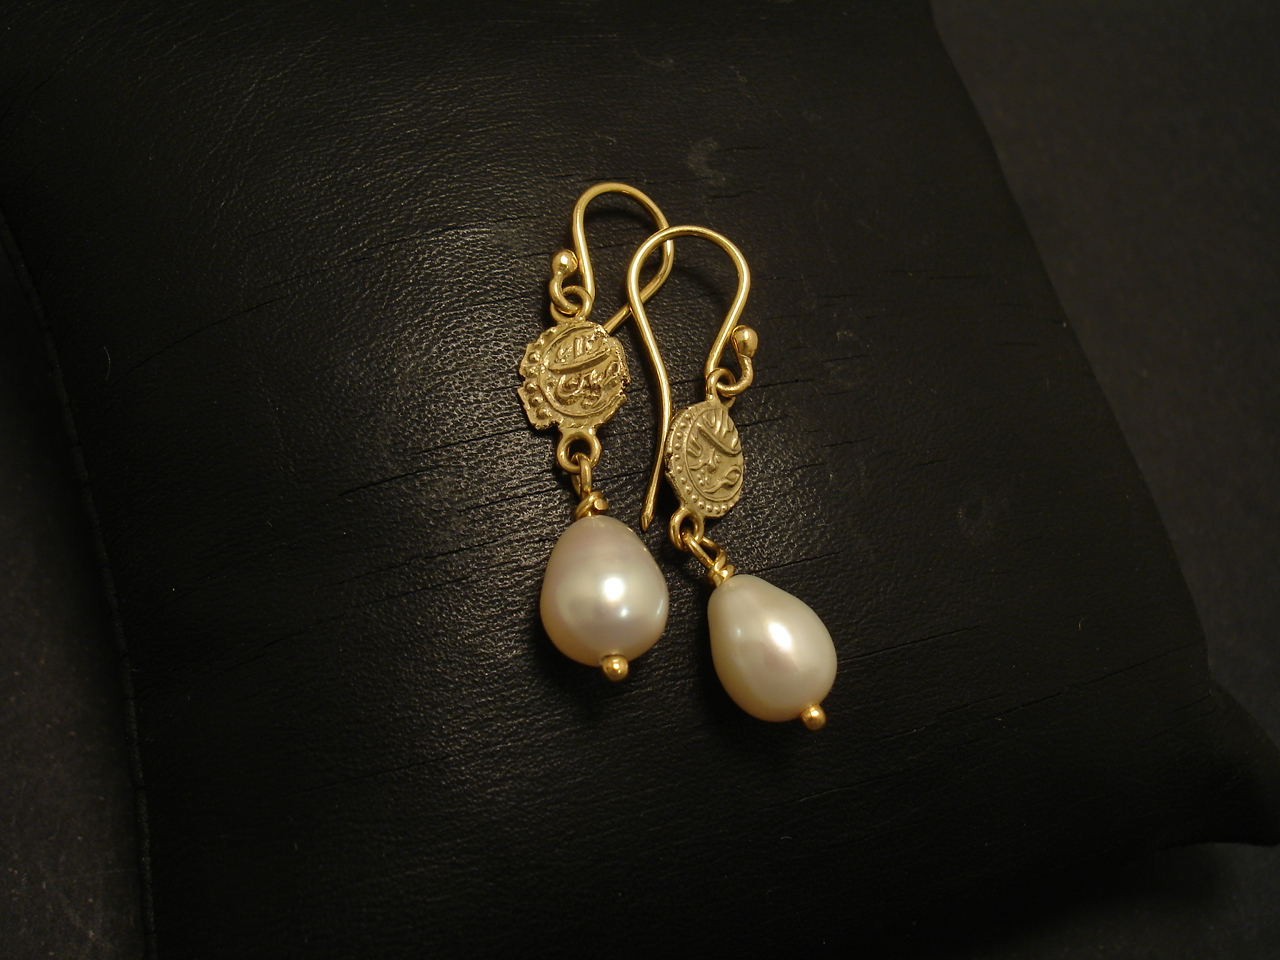 Old Malabar Gold Coins, 18ct Gold Earrings, Pearl - Christopher William  Sydney Australia - Antique, ruby, coral and tribal jewellery